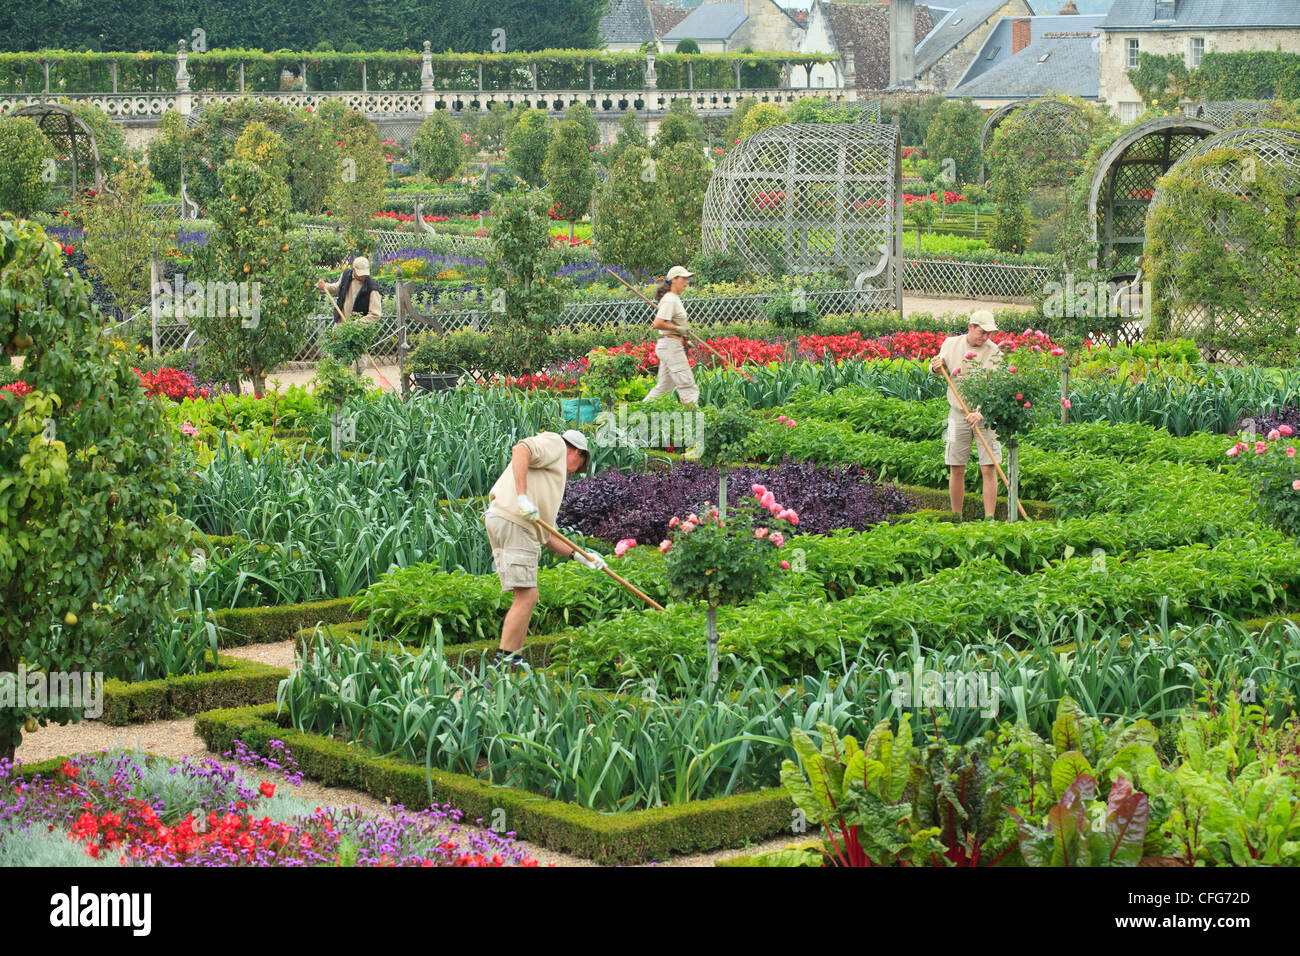 Gardeners Kitchen France Gardens Of The Castle Of Villandry The Gardeners In The